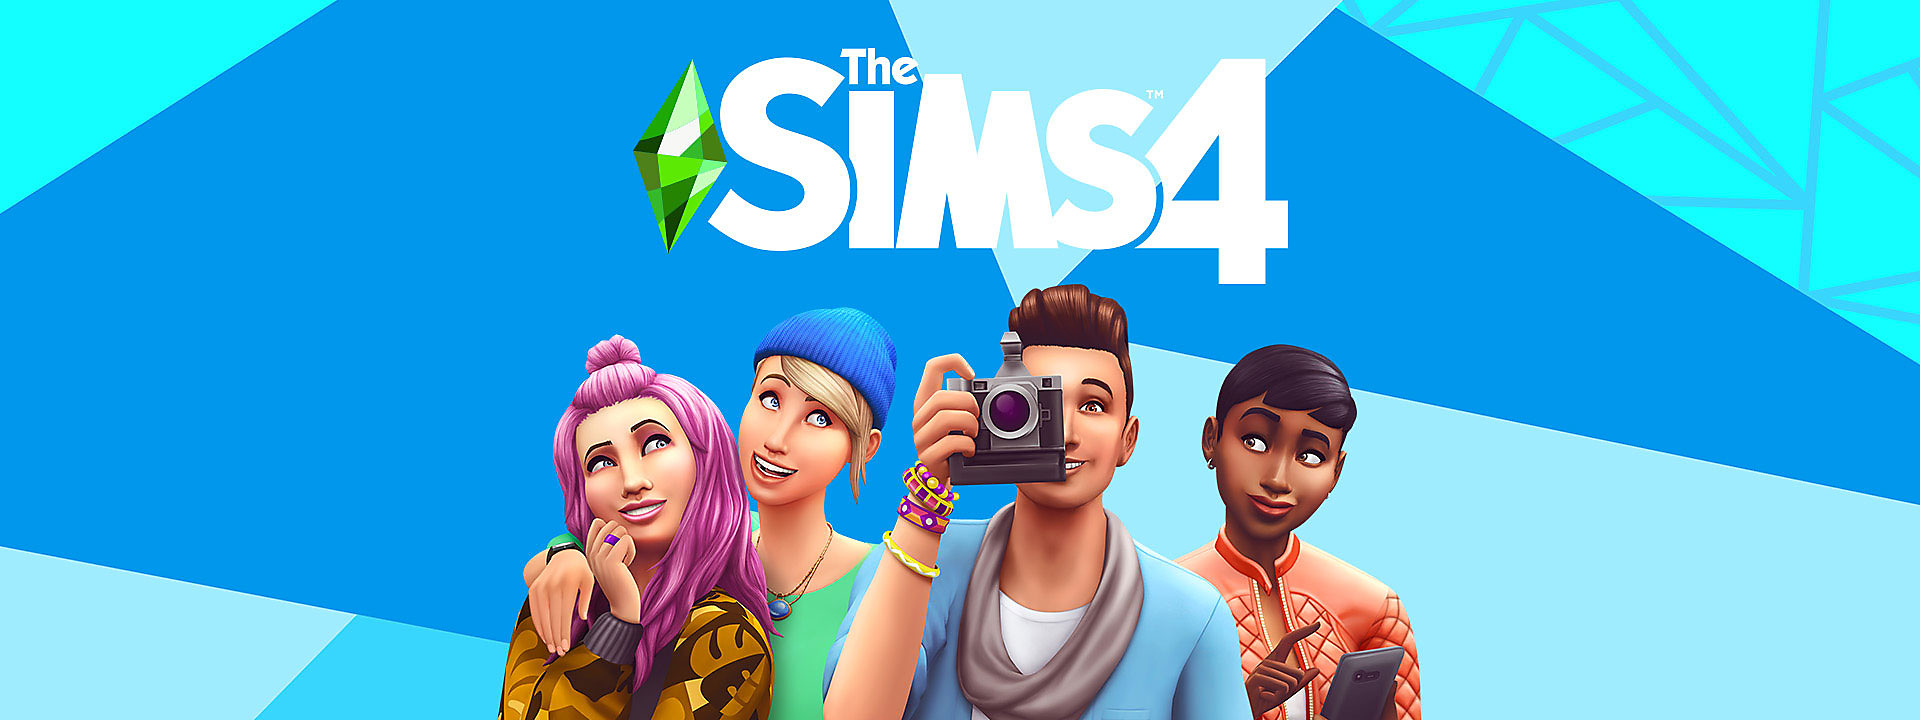 The Sims 4 Game Ps4 Playstation